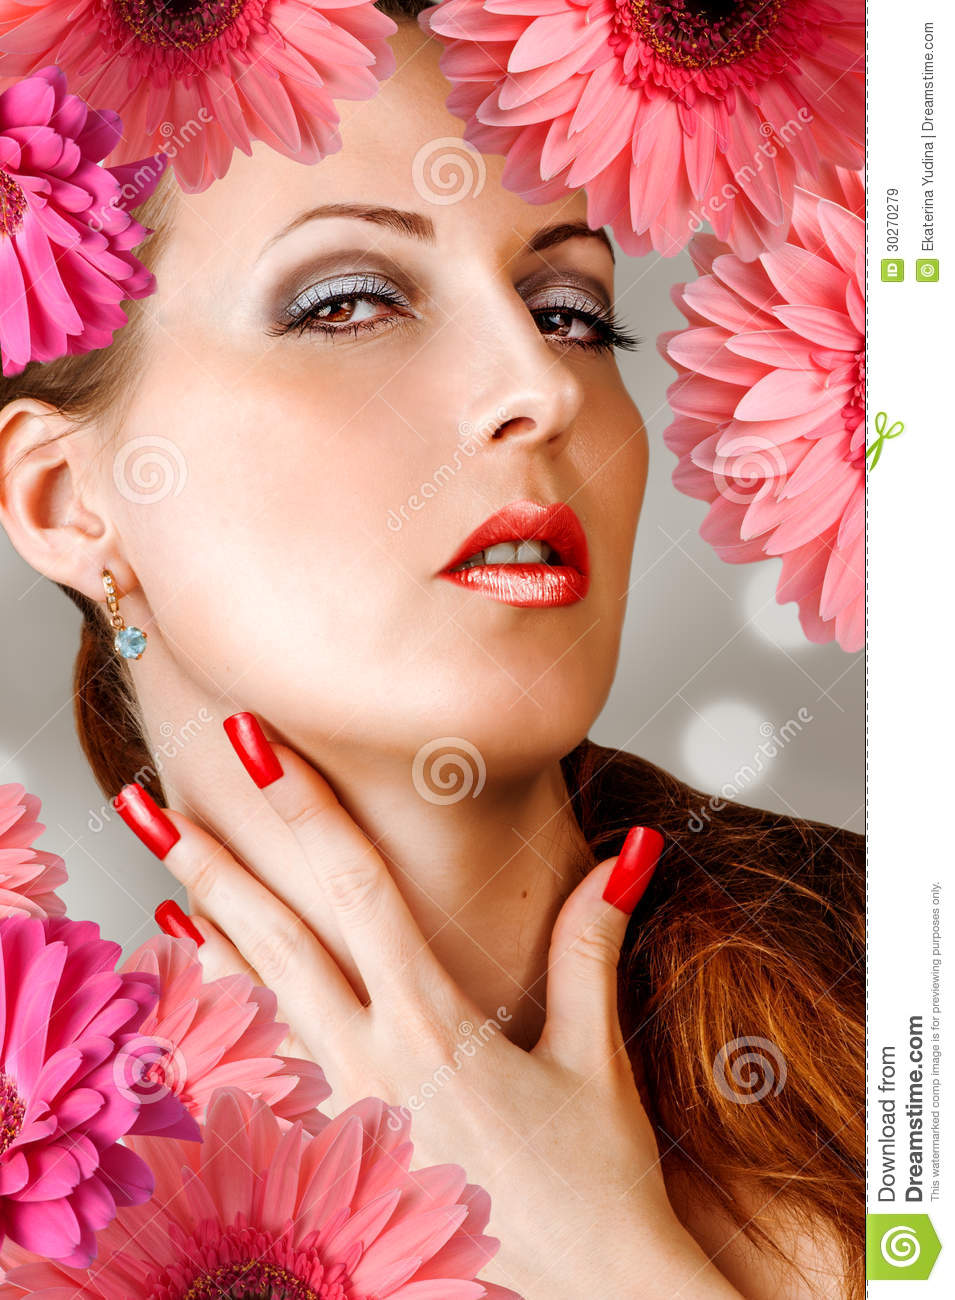 Woman With Lashes, Nails, Red Lips Royalty Free Stock